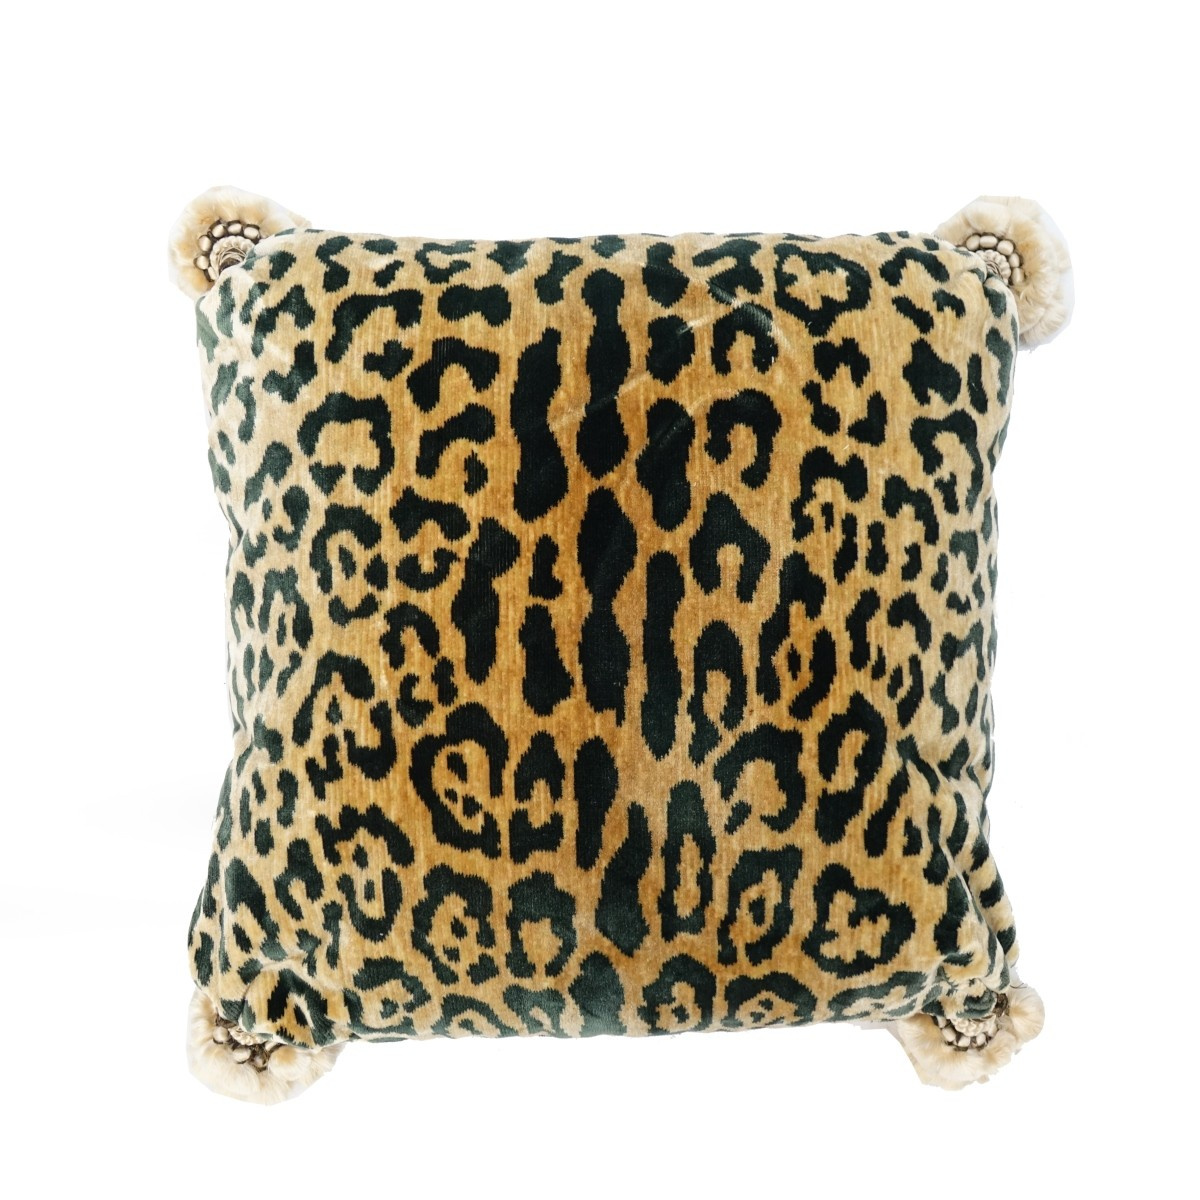 Three Leopard Velvet Pillows